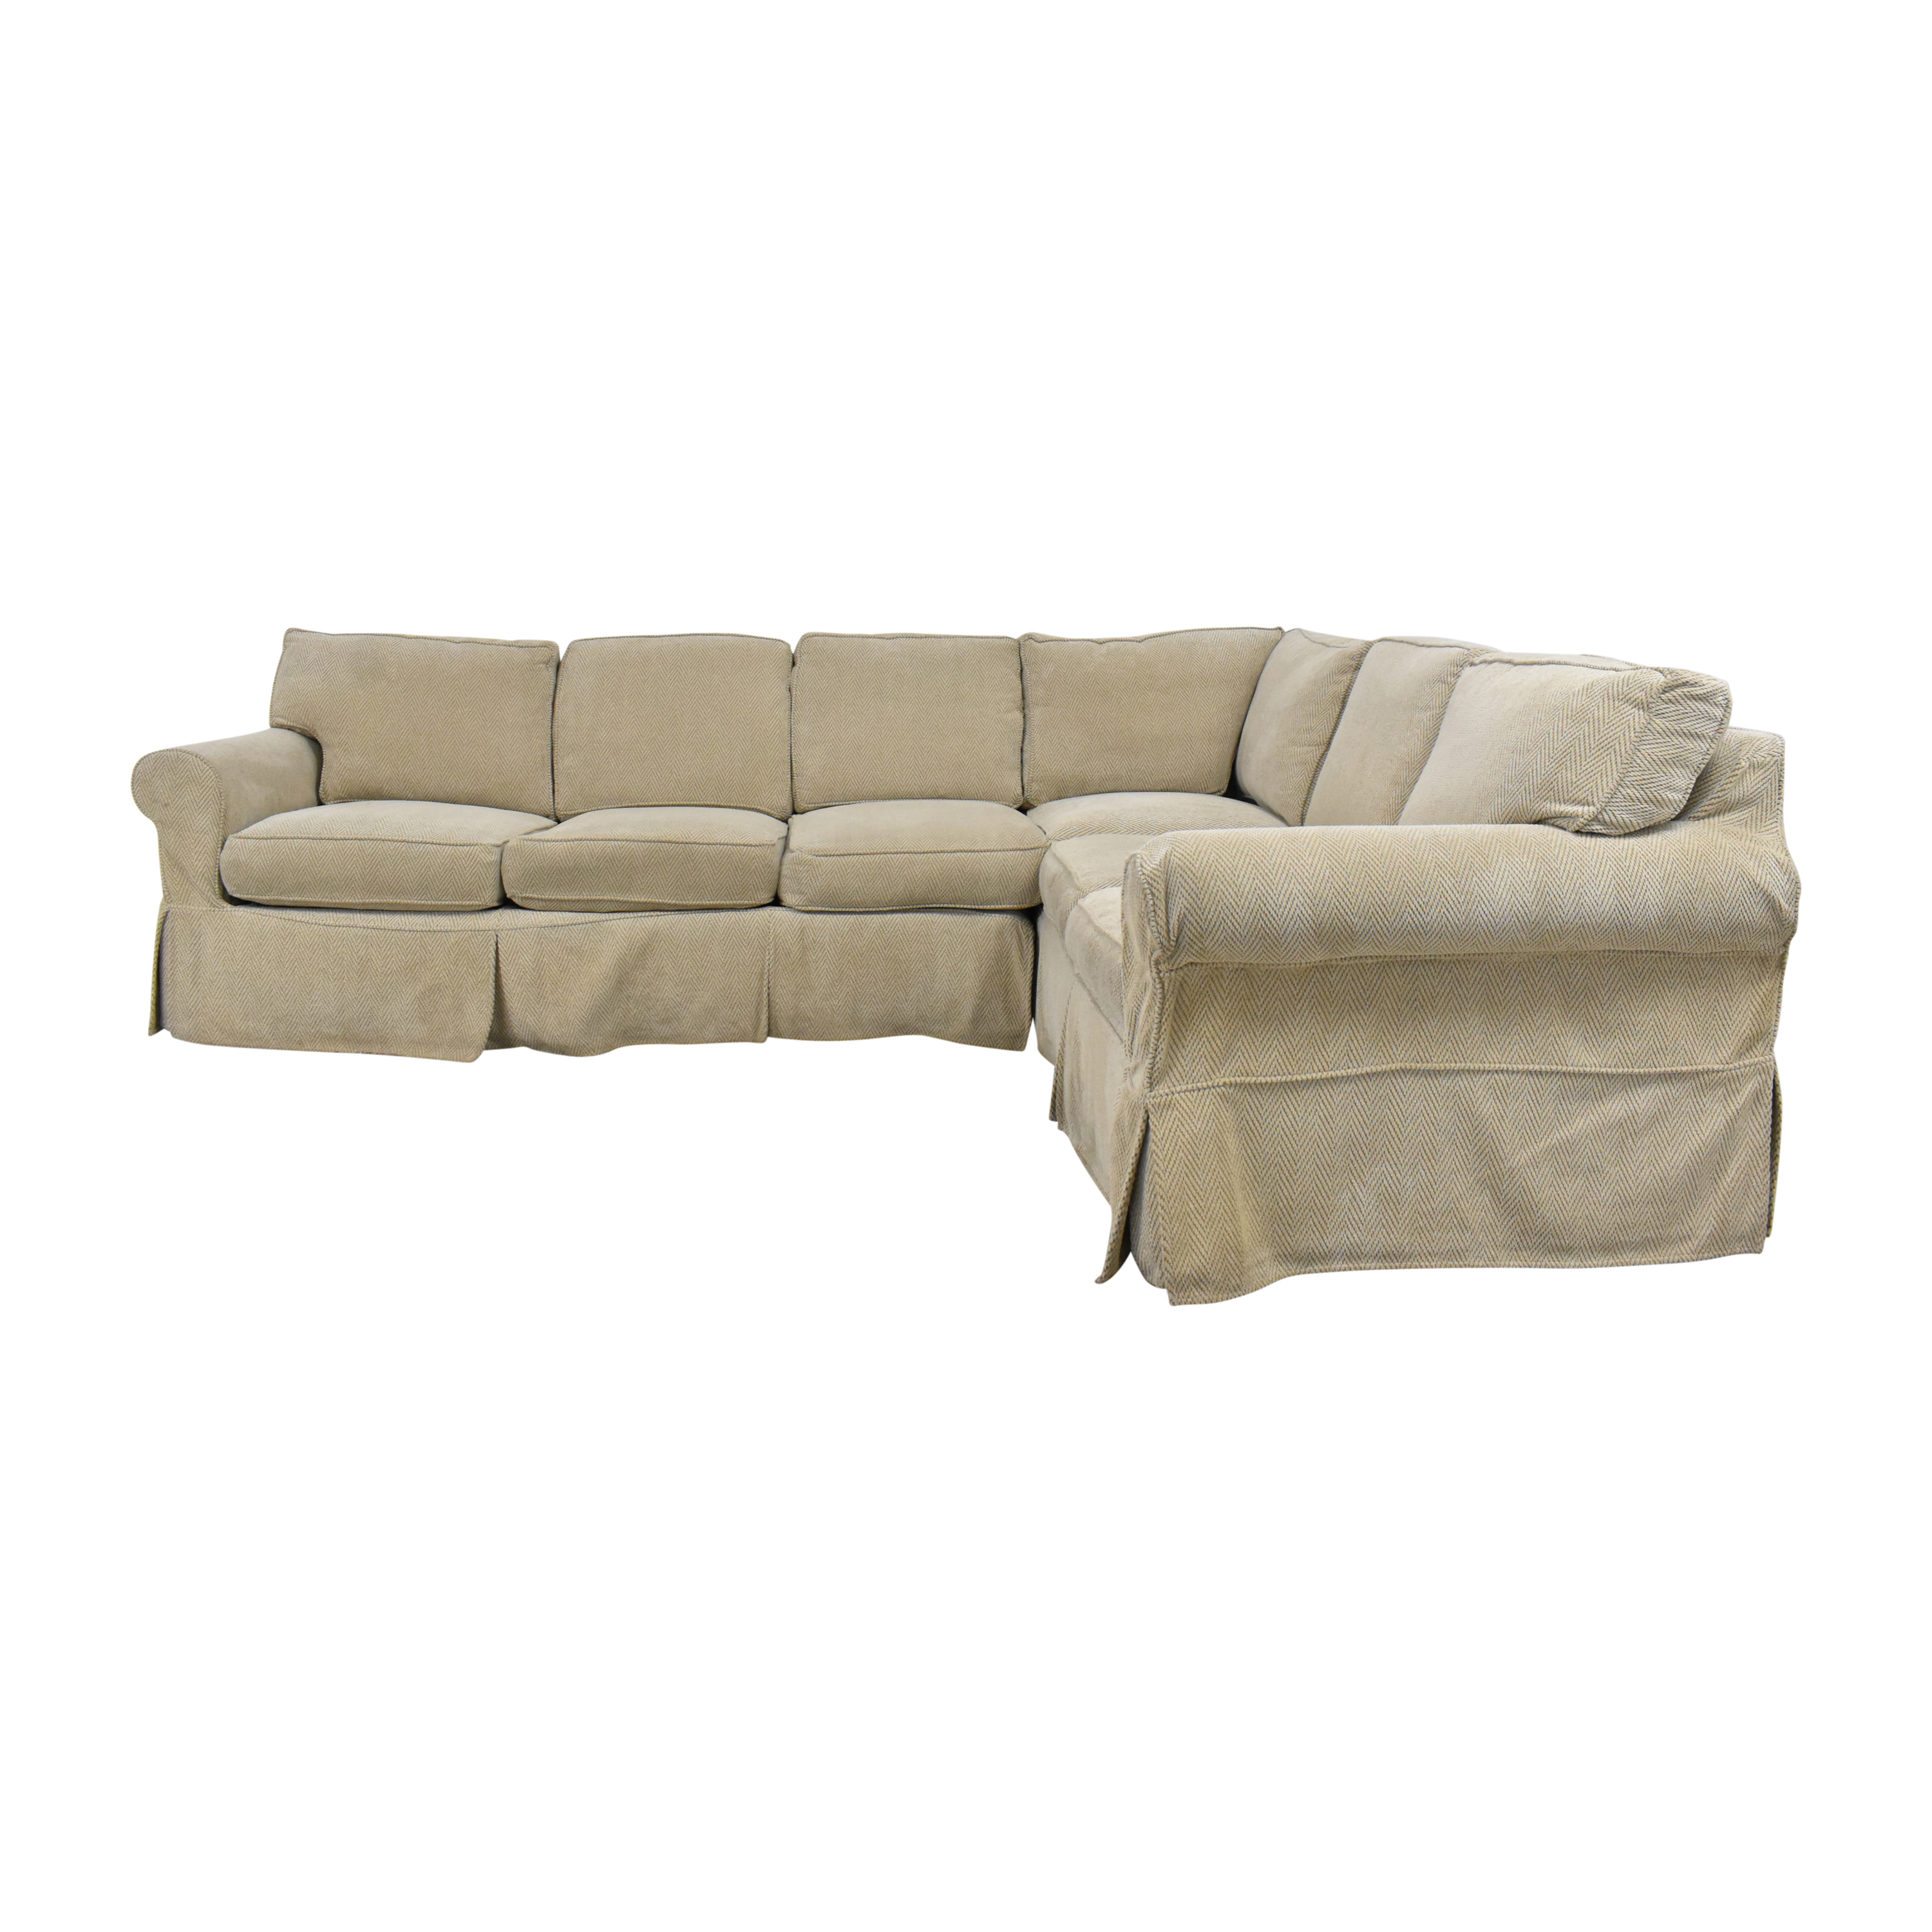 Country Willow Country Willow Vineyard Slipcovered Corner Sectional Sofa on sale